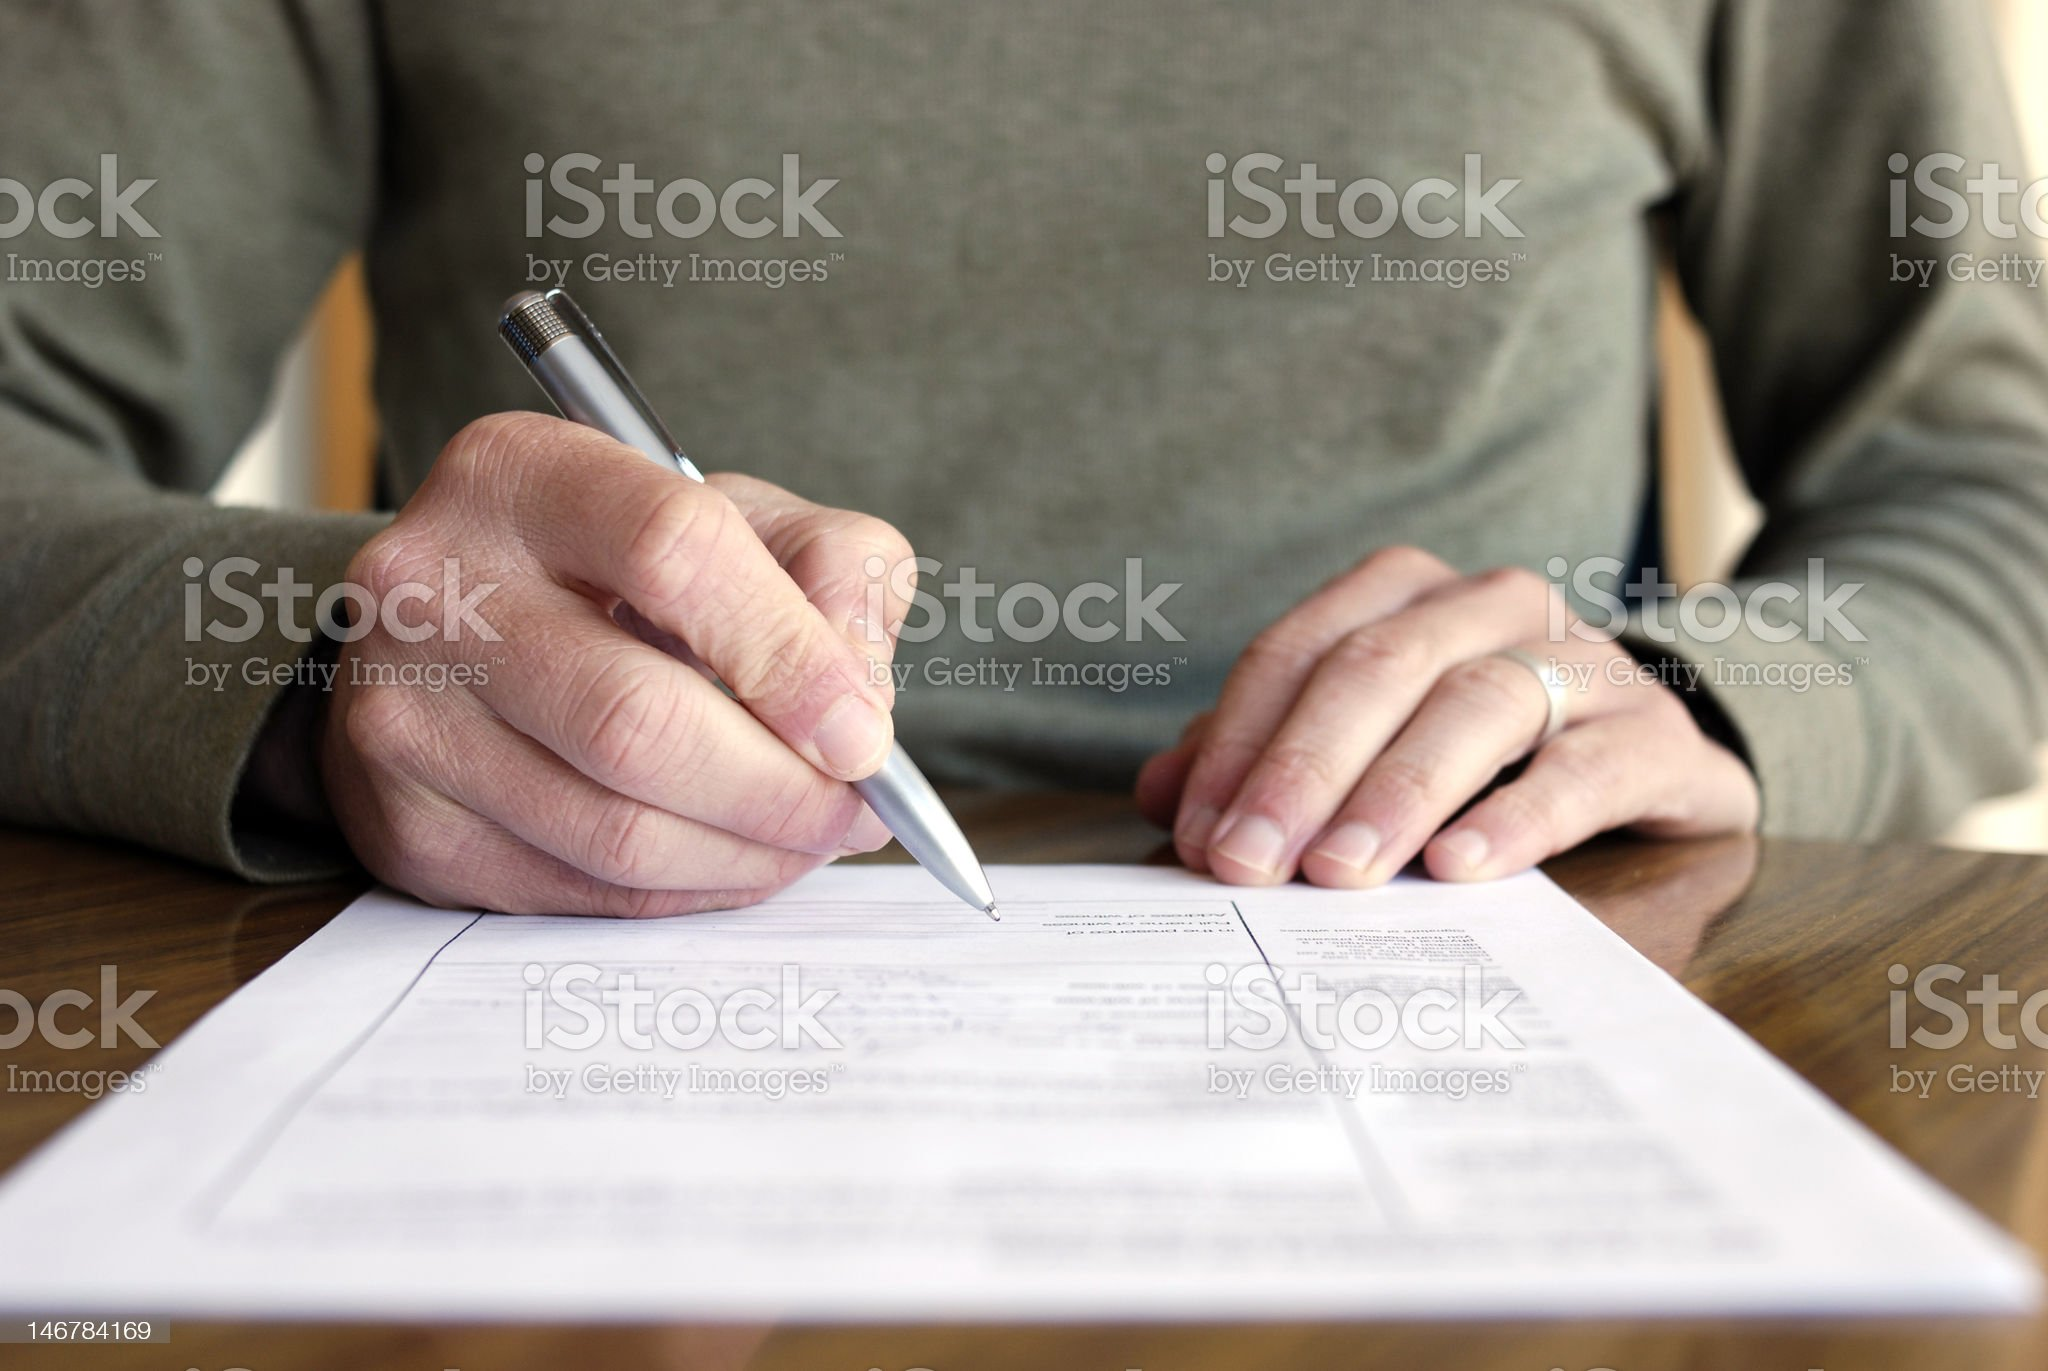 Man Filling Out Form on Table royalty-free stock photo